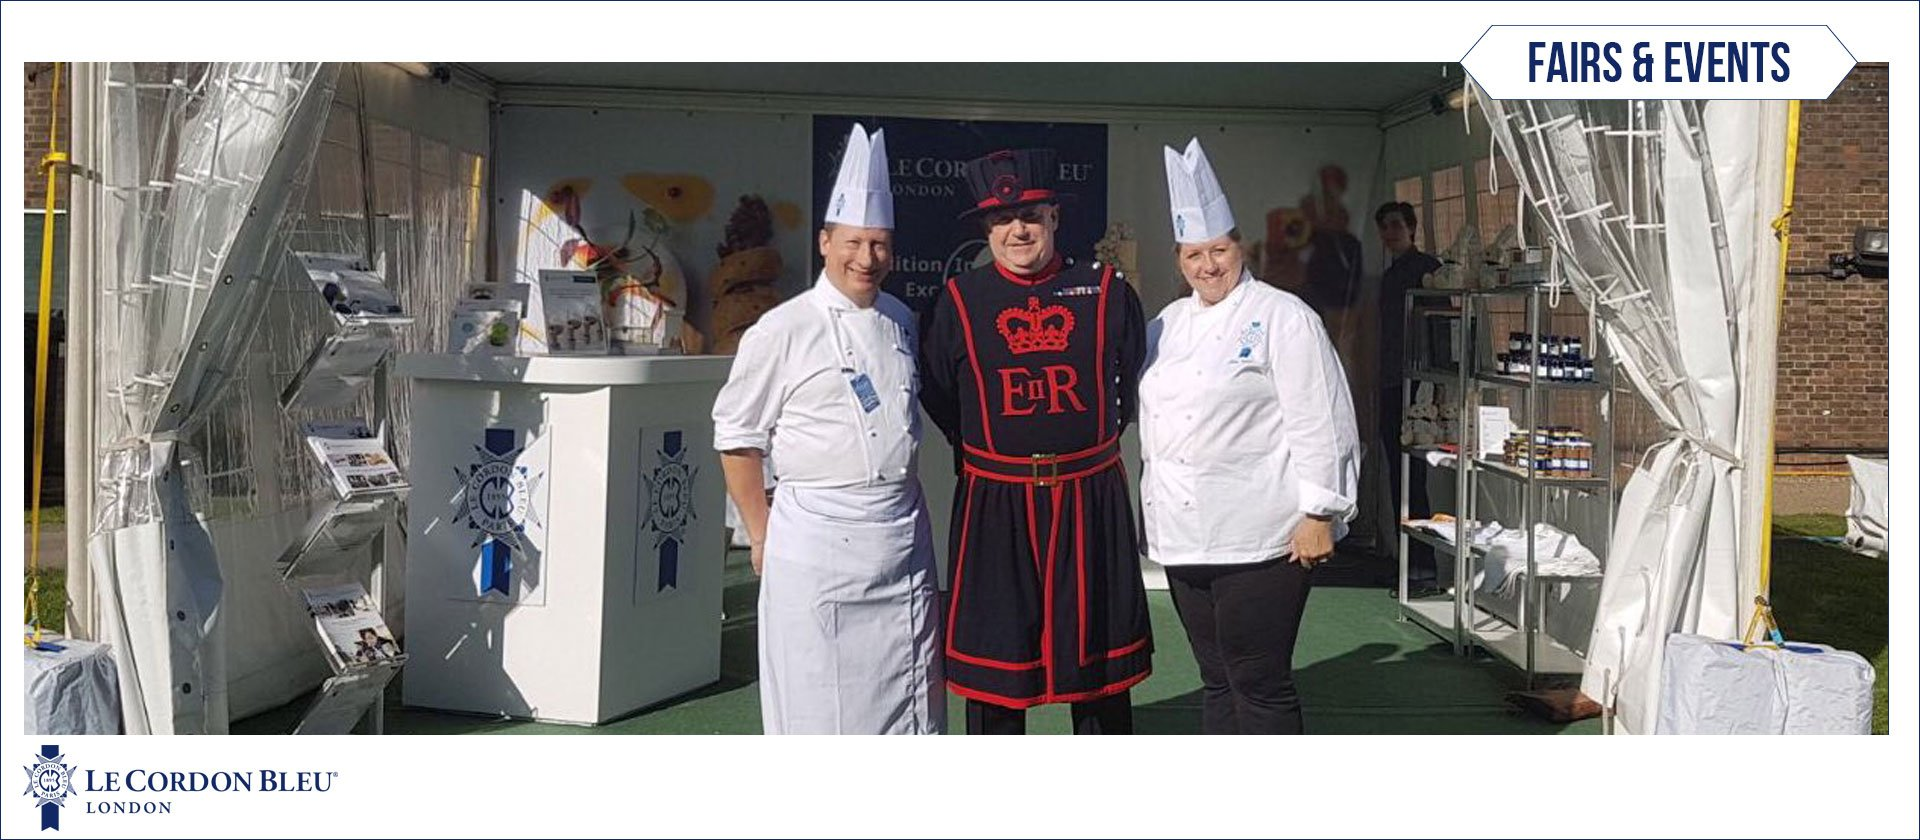 Le Cordon Bleu at Tower of London Festival 2018